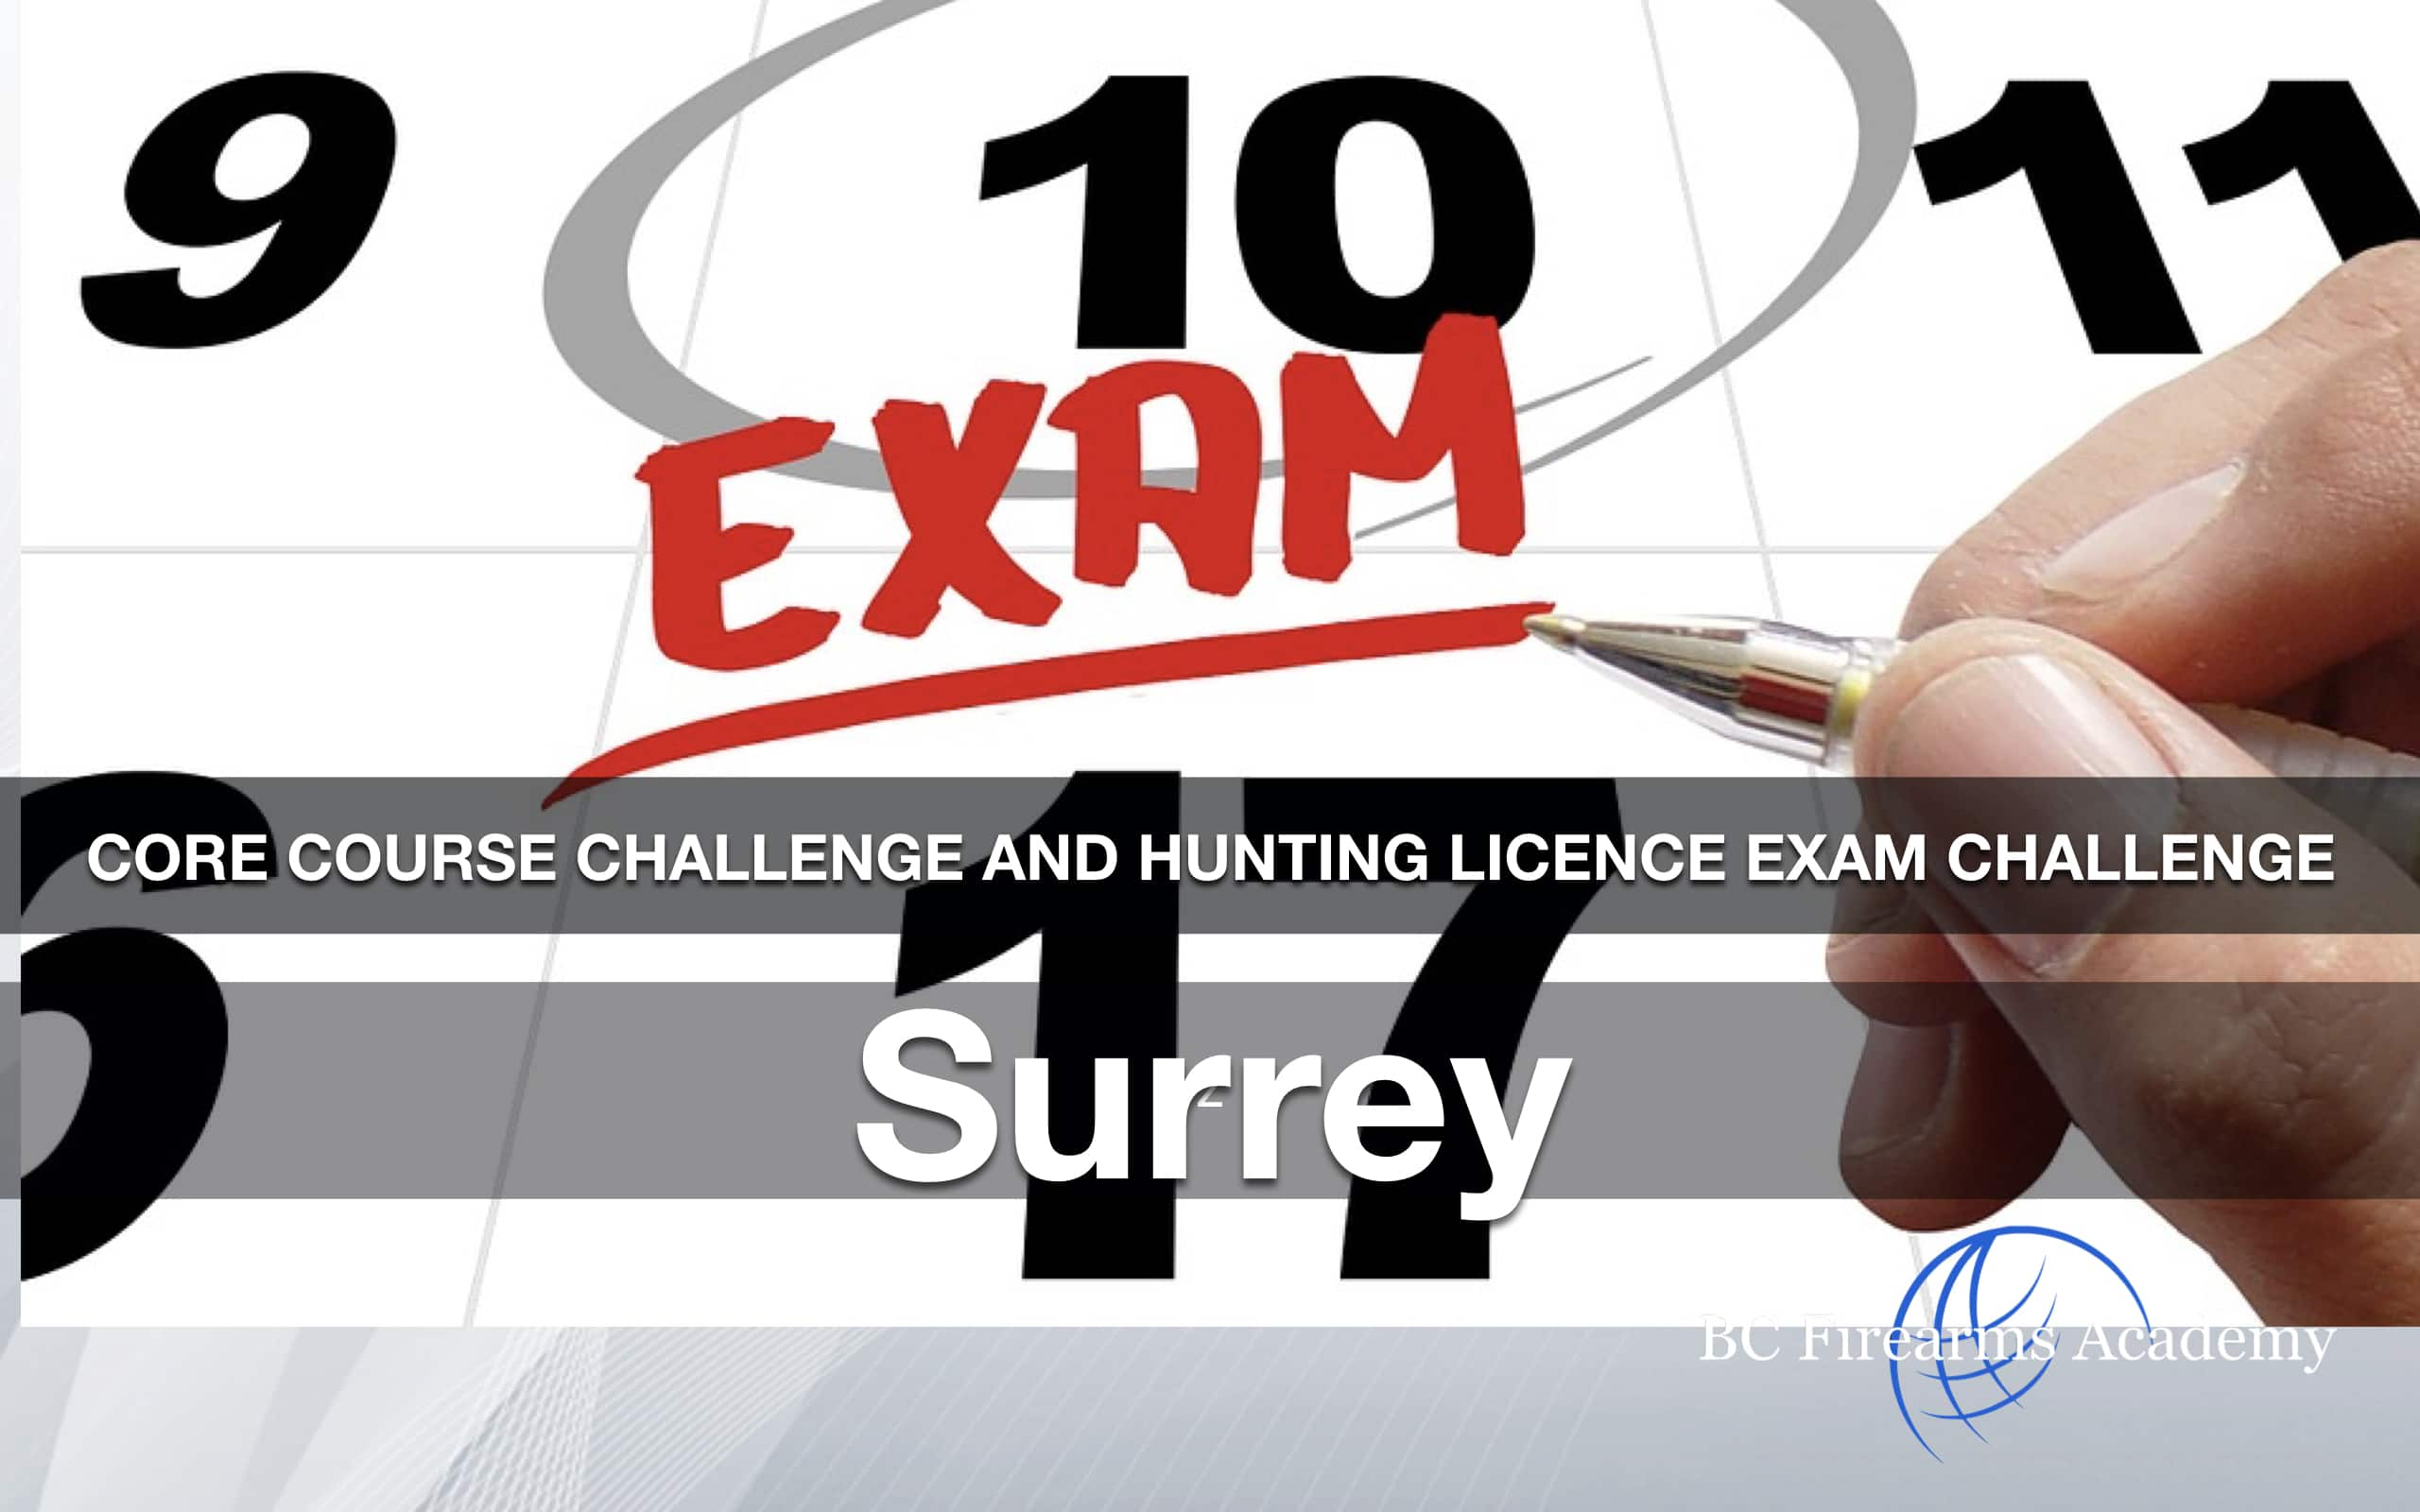 CORE Hunting License Exam Challenge: Surrey Friday Oct 16